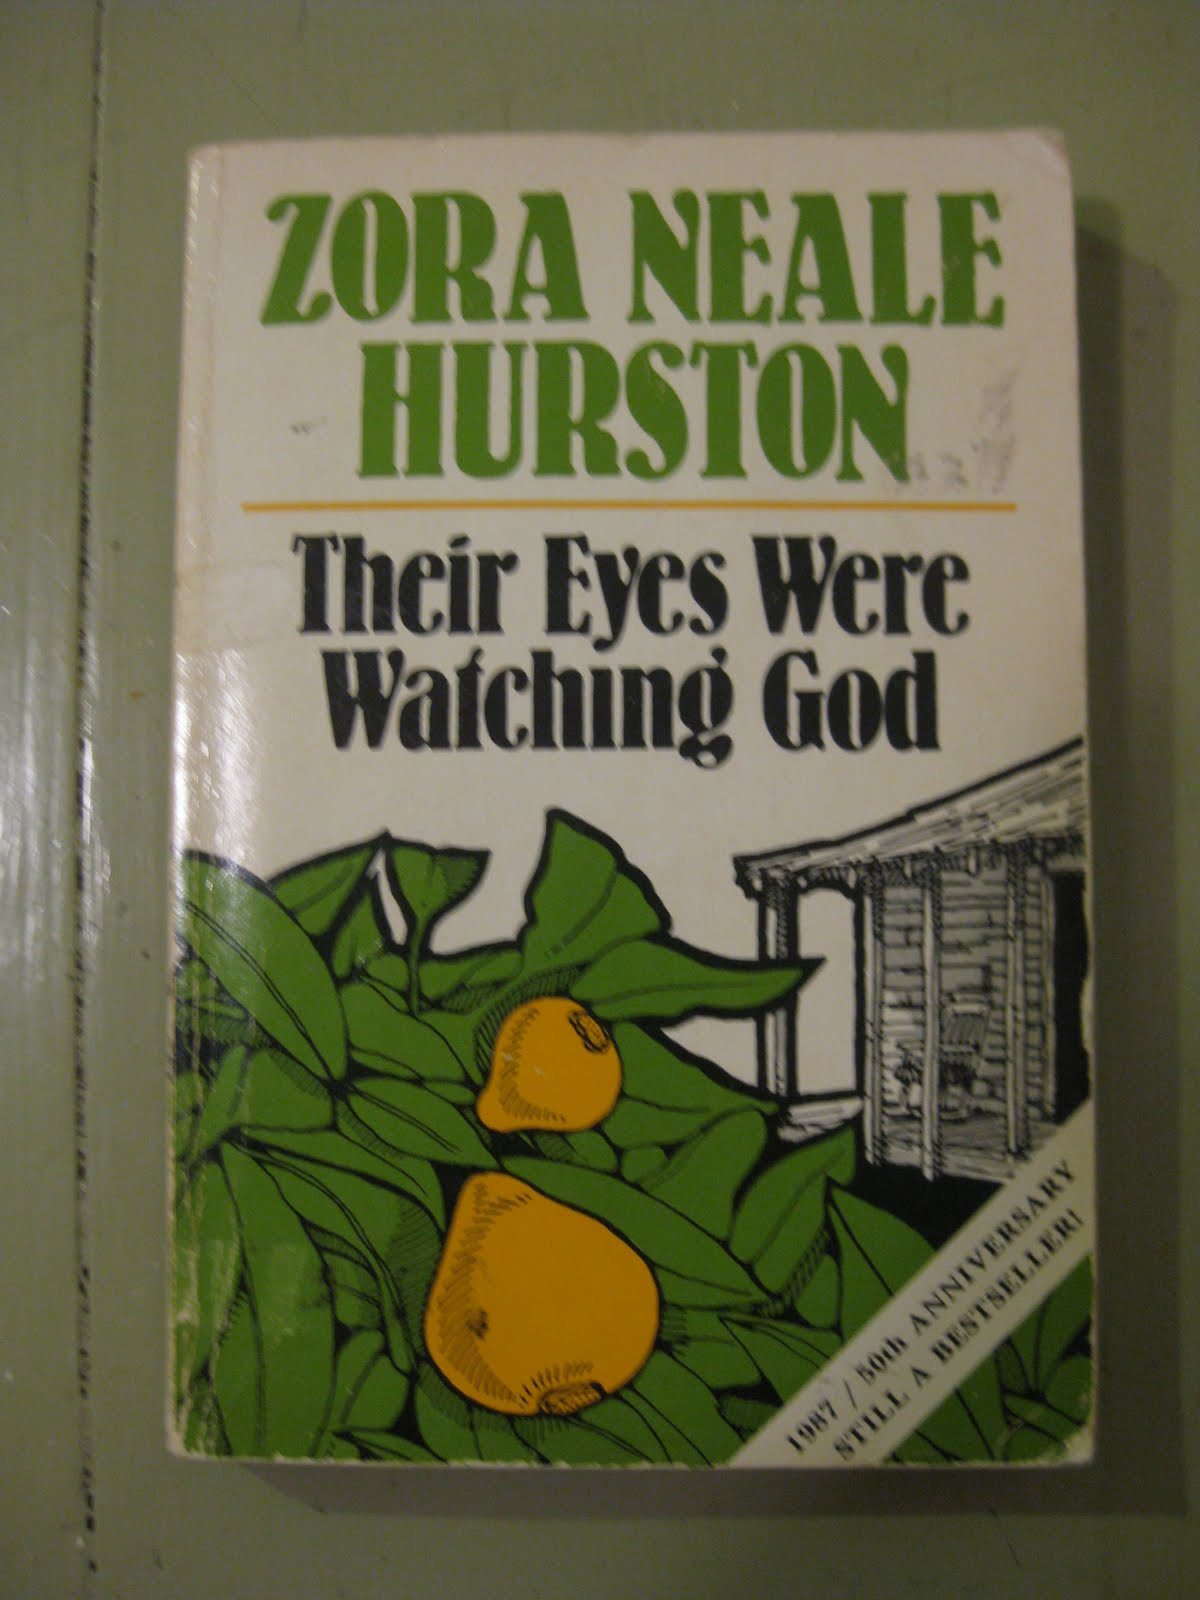 the love and relationship dynamic in their eyes were watching god a novel by zora neale hurston Their eyes were watching god was zora neale hurston's 2 nd novel written in 1936 and published in 1937 although it was often associated with the harlem renaissance and was criticized by many harlem renaissance writers, their eyes technically came after the movement which.